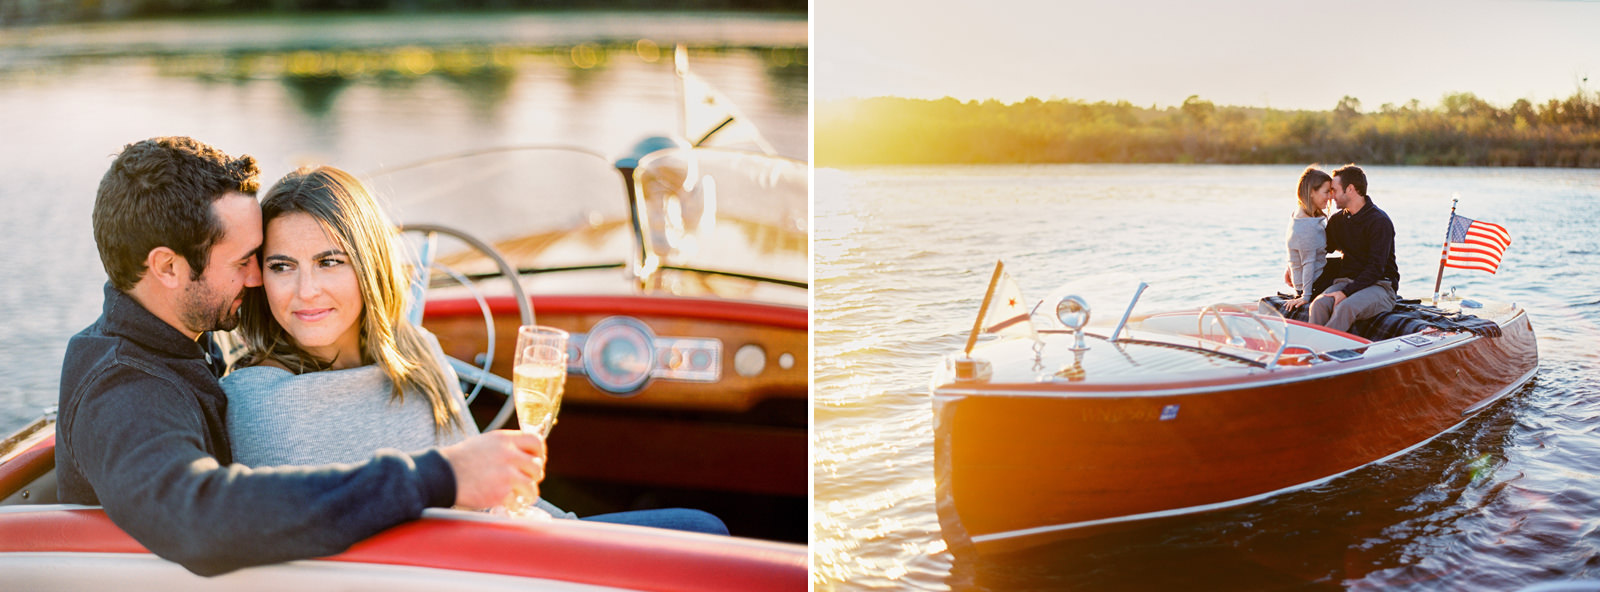 067-sunset-engagment-on-a-vintage-boat-by-best-washington-film-photographer-ryan-flynn.jpg